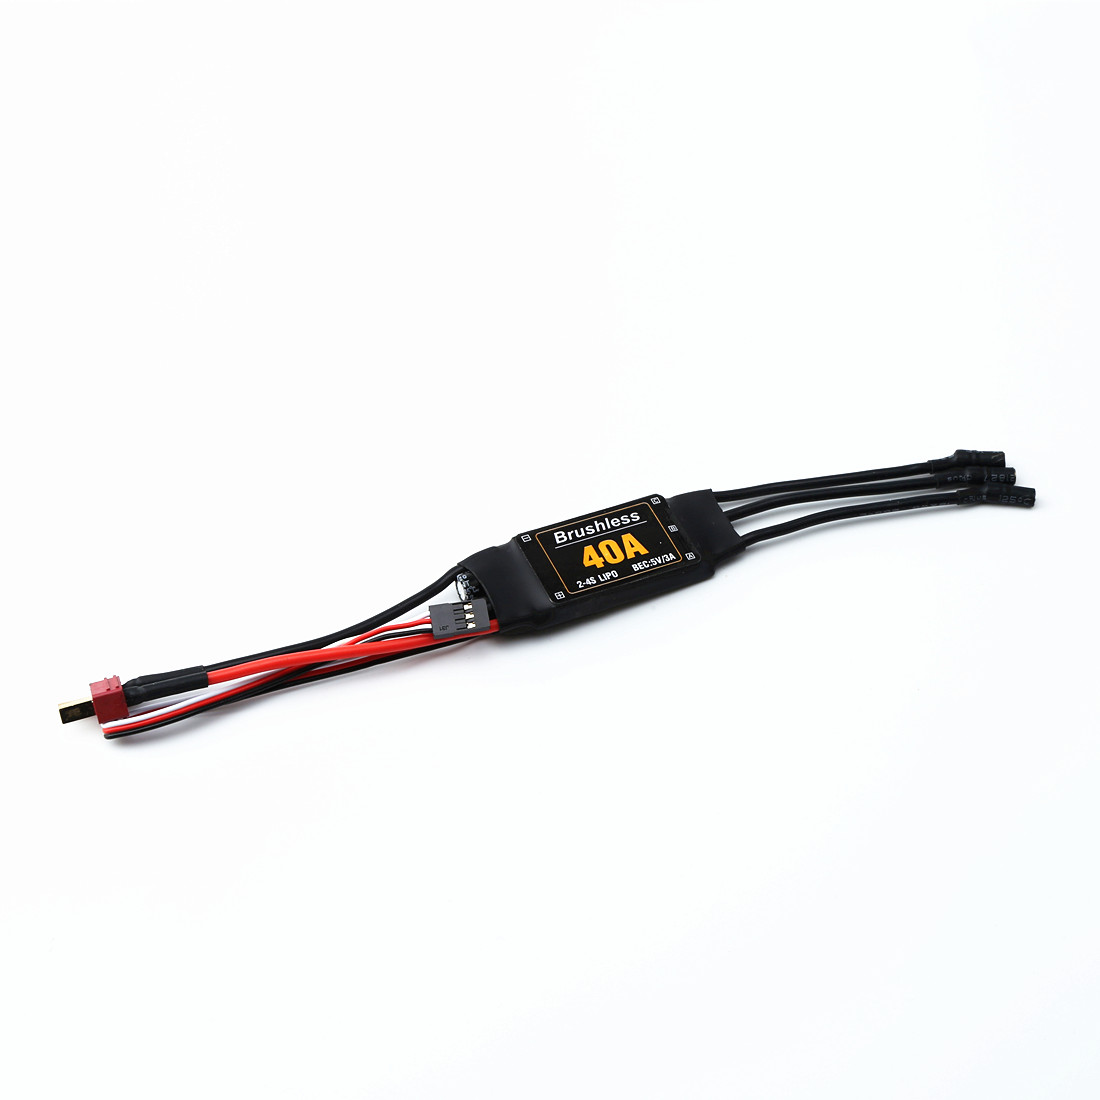 40A Speed Controller Brushless ESC Drone Helicopter FPV Parts Multicopters Durable Components RC Toys Quadcopter Accessories as shown